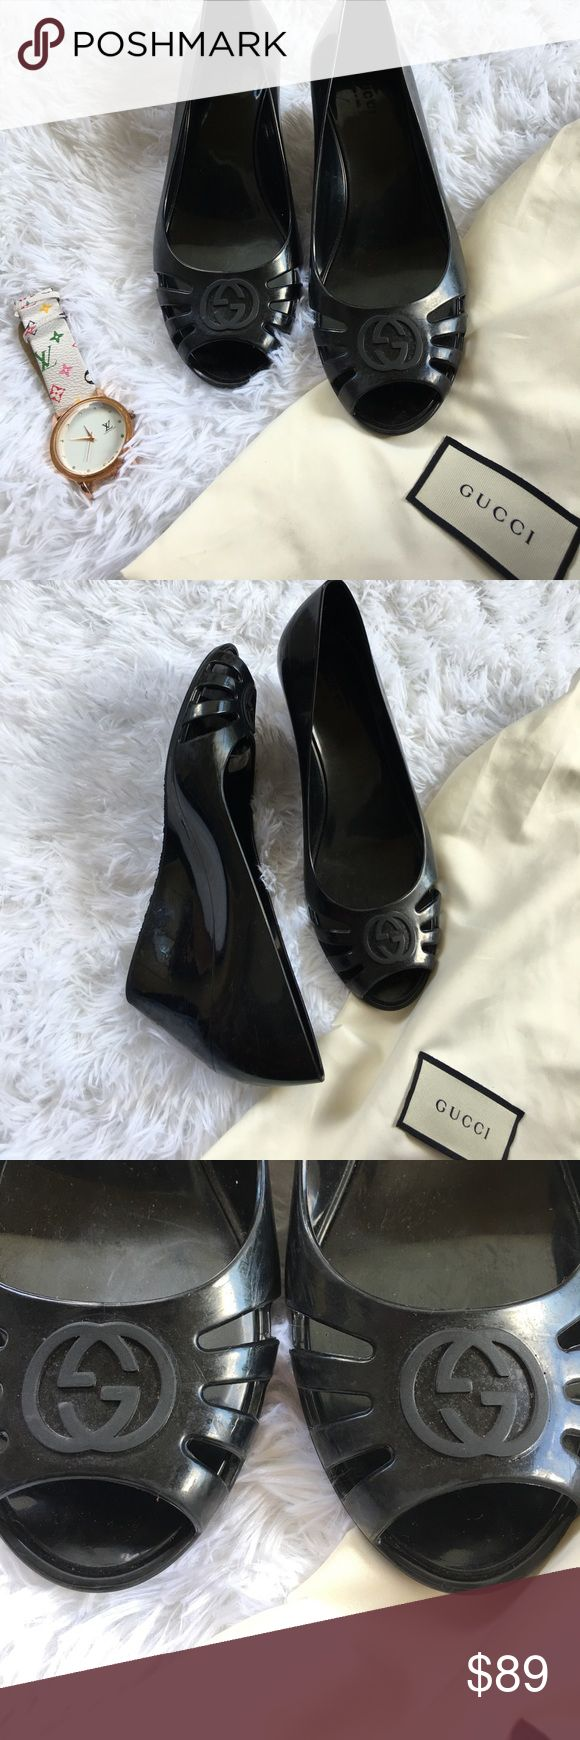 Gucci marola jelly wedges These are authentic, all pics included and there are scuffs on the heel which is pictured. No box or dust bag included. Open to reasonable offers! Smoke & pet free home. Any questions please ask. I am an 8/8.5 but these fit a little small. Gucci Shoes Heels